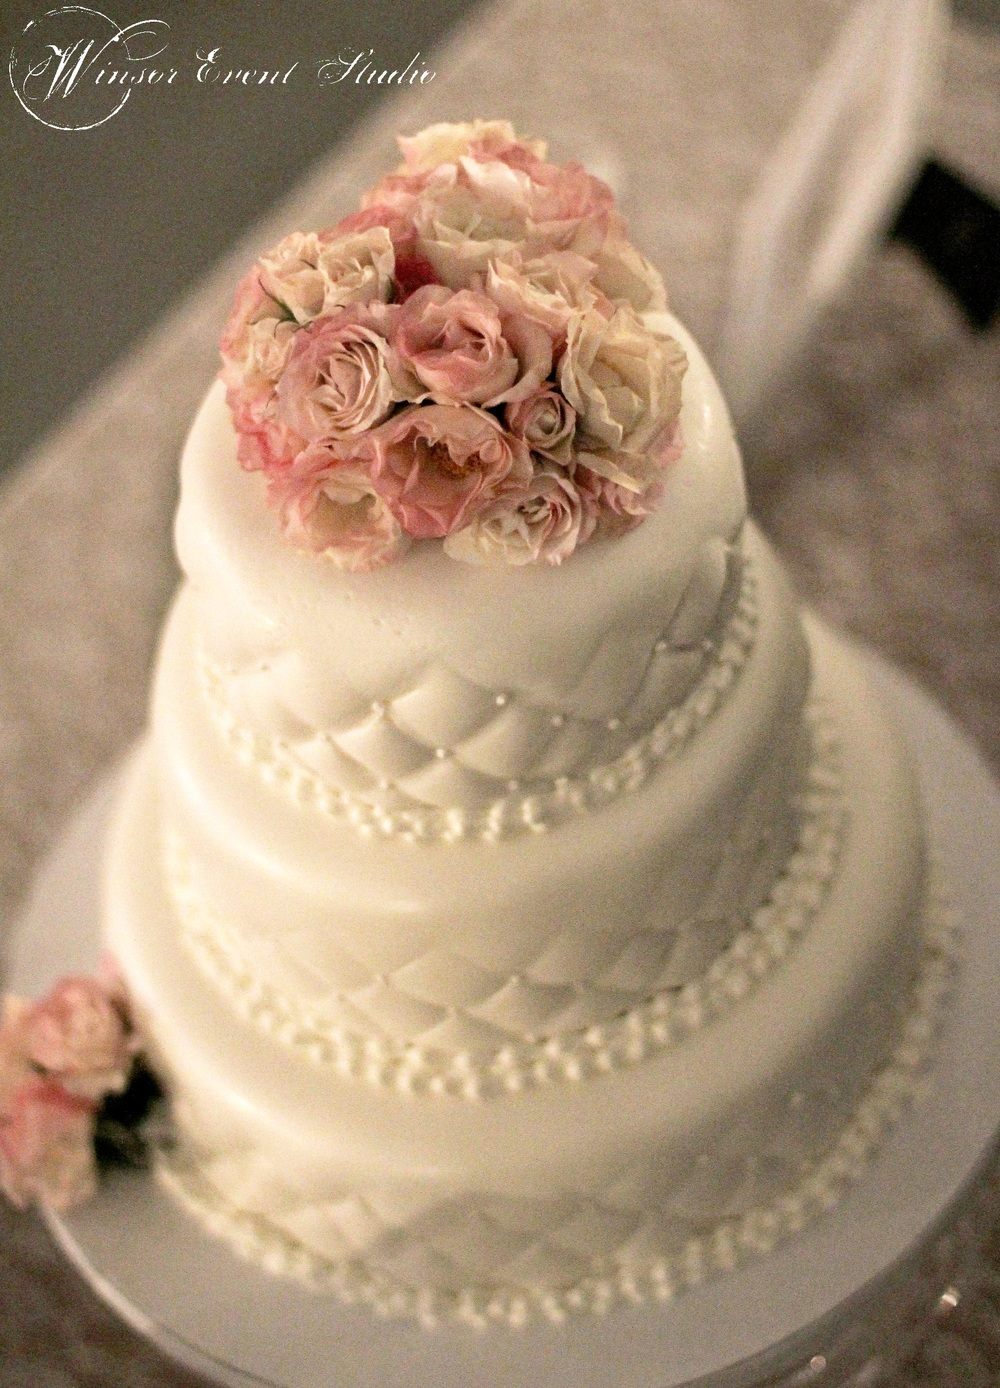 The wedding cake featured quilted fondant with pearl accents and blush spray roses